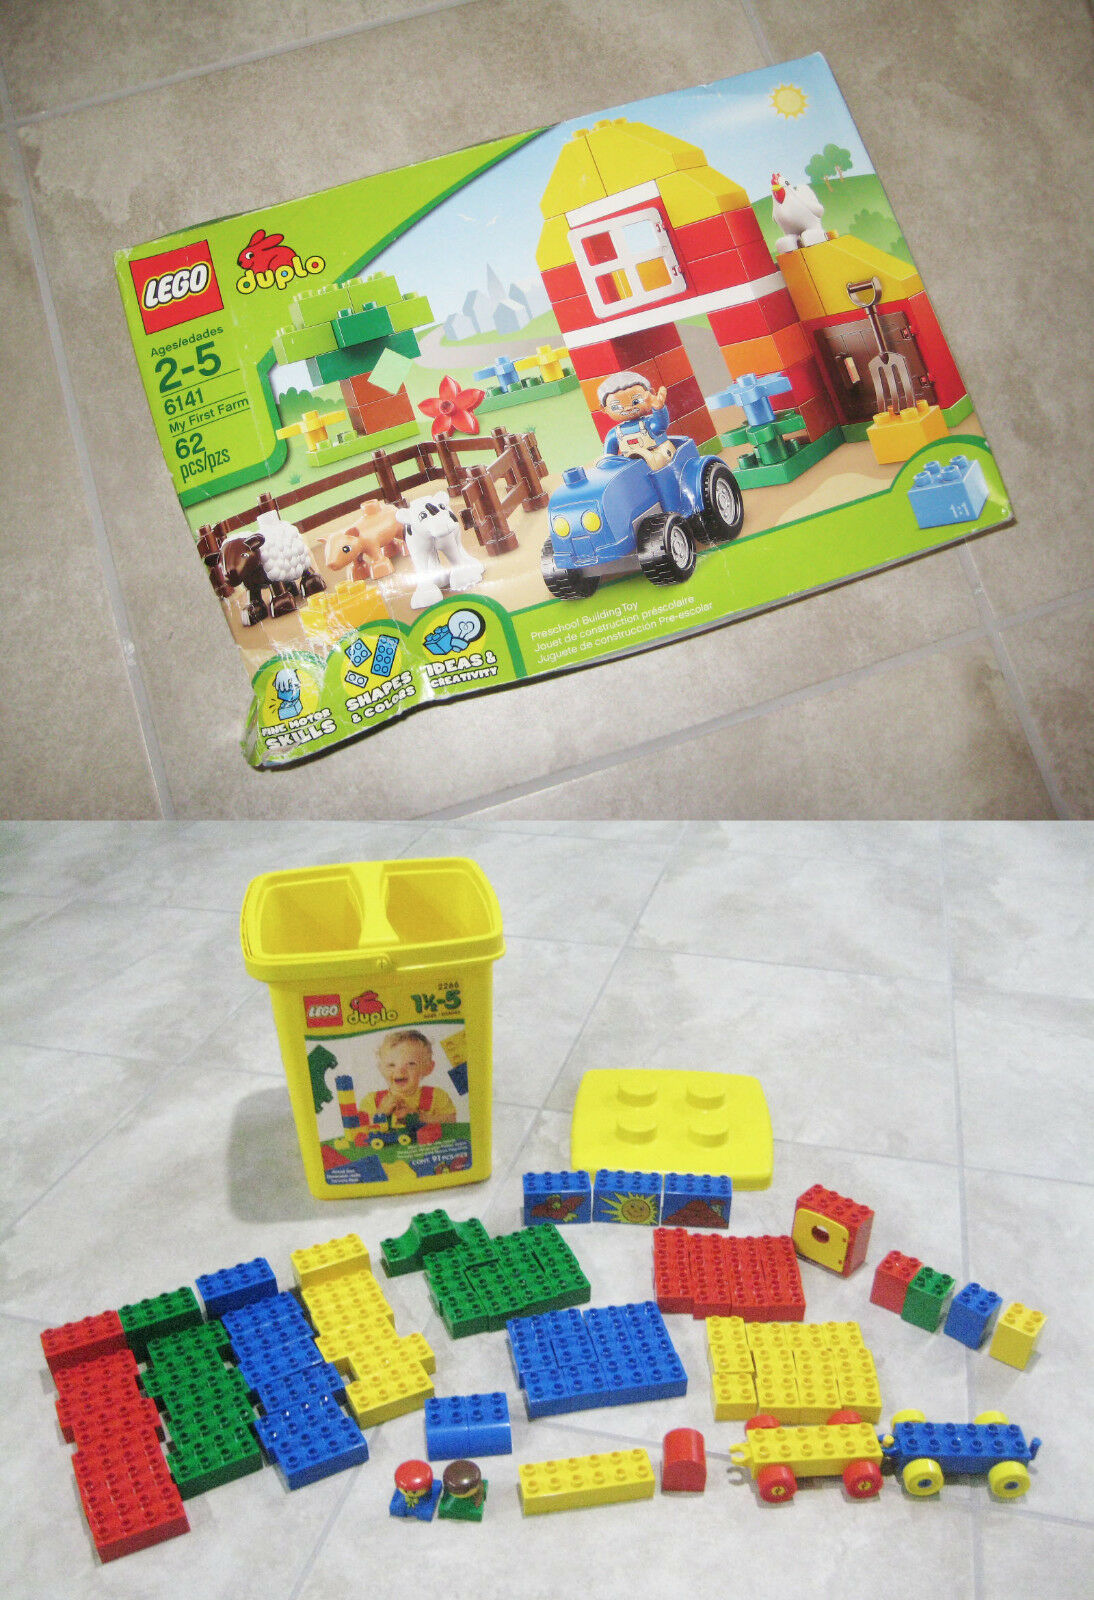 LEGO 6141 Duplo My First Farm (NEW) + 2266 (Loose); 186 total; Lot